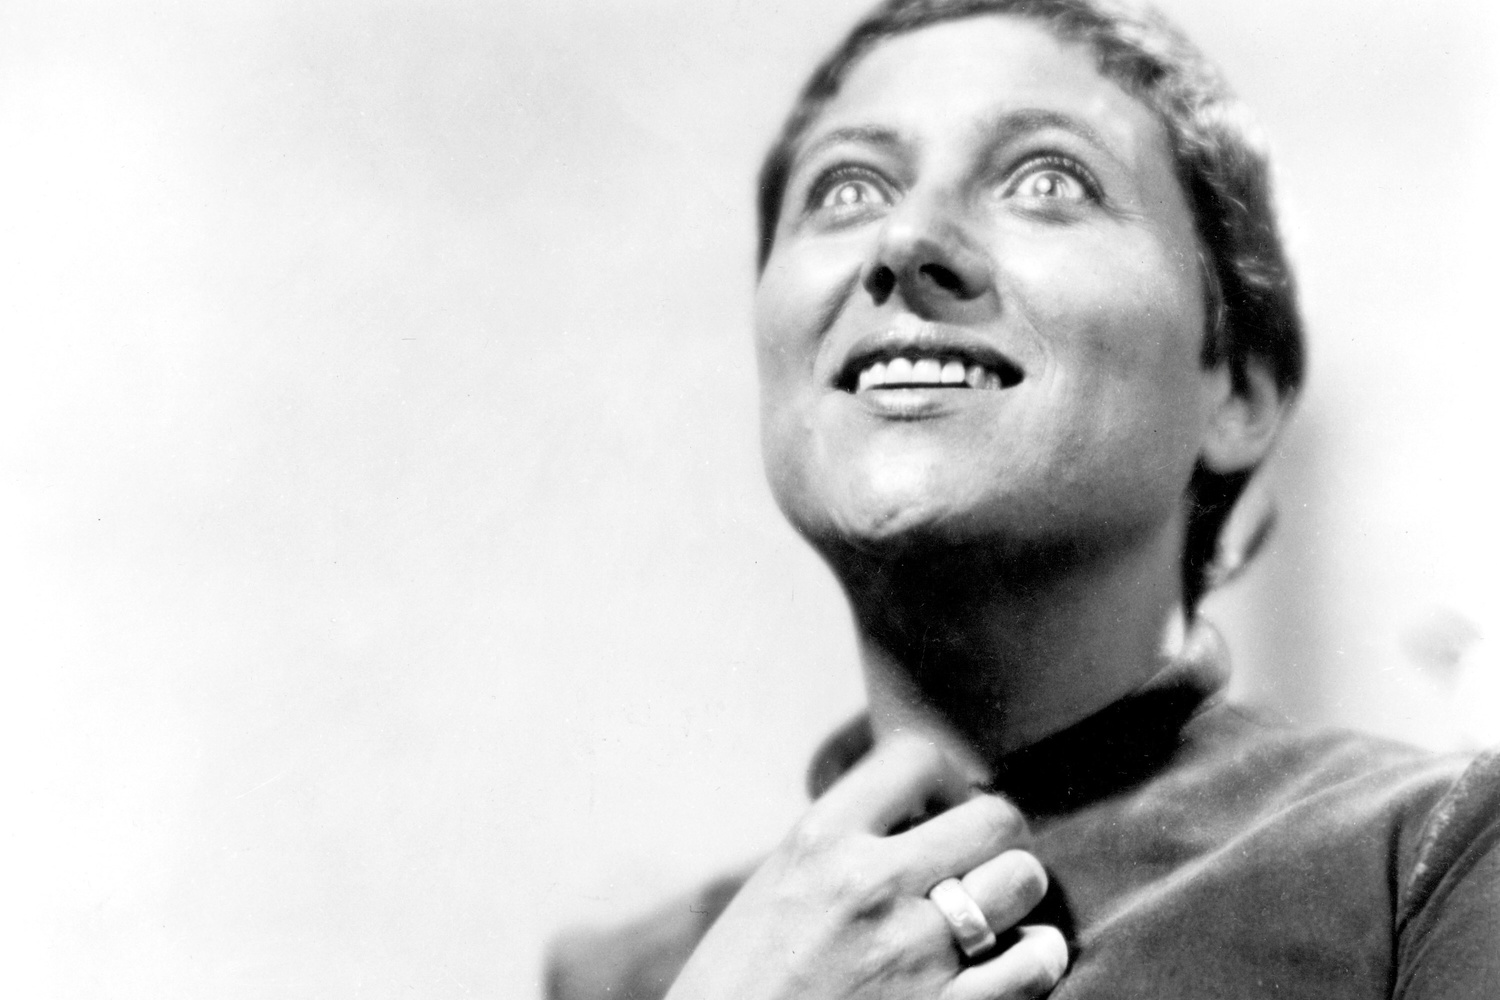 La Passion de Jeanne d'Arc. (The Passion of Joan of Arc). 1928. France. Directed by Carl Theodor Dreyer. Courtesy Photofest